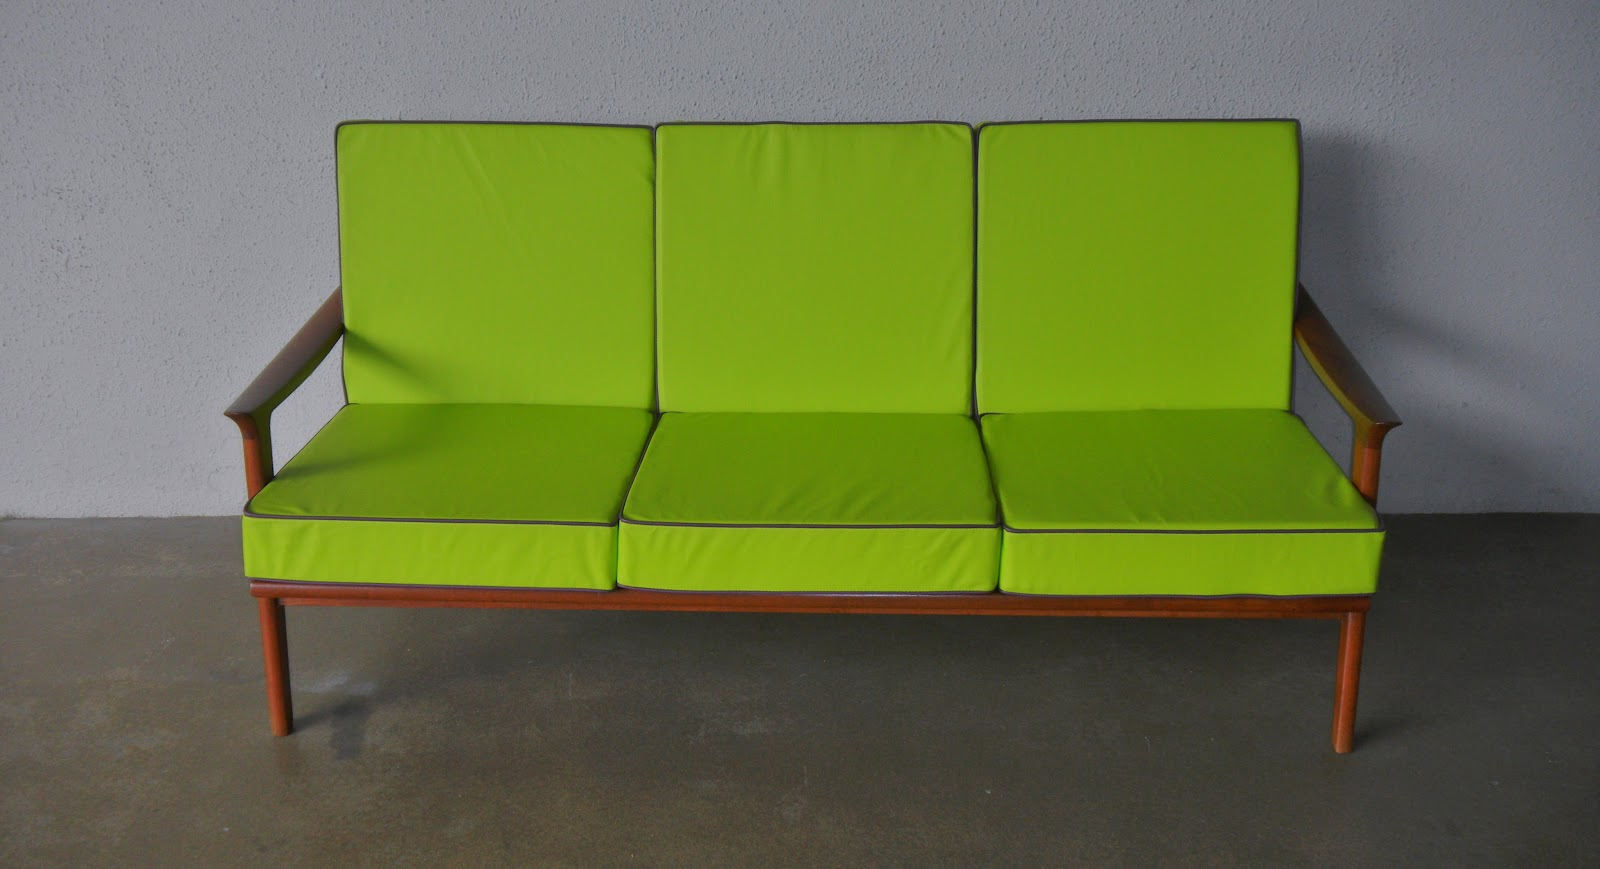 Lime Sofa Chair Queen Anne Table Cherry Finish Vintage Furniture Second Charm 39s Latest Midcentury